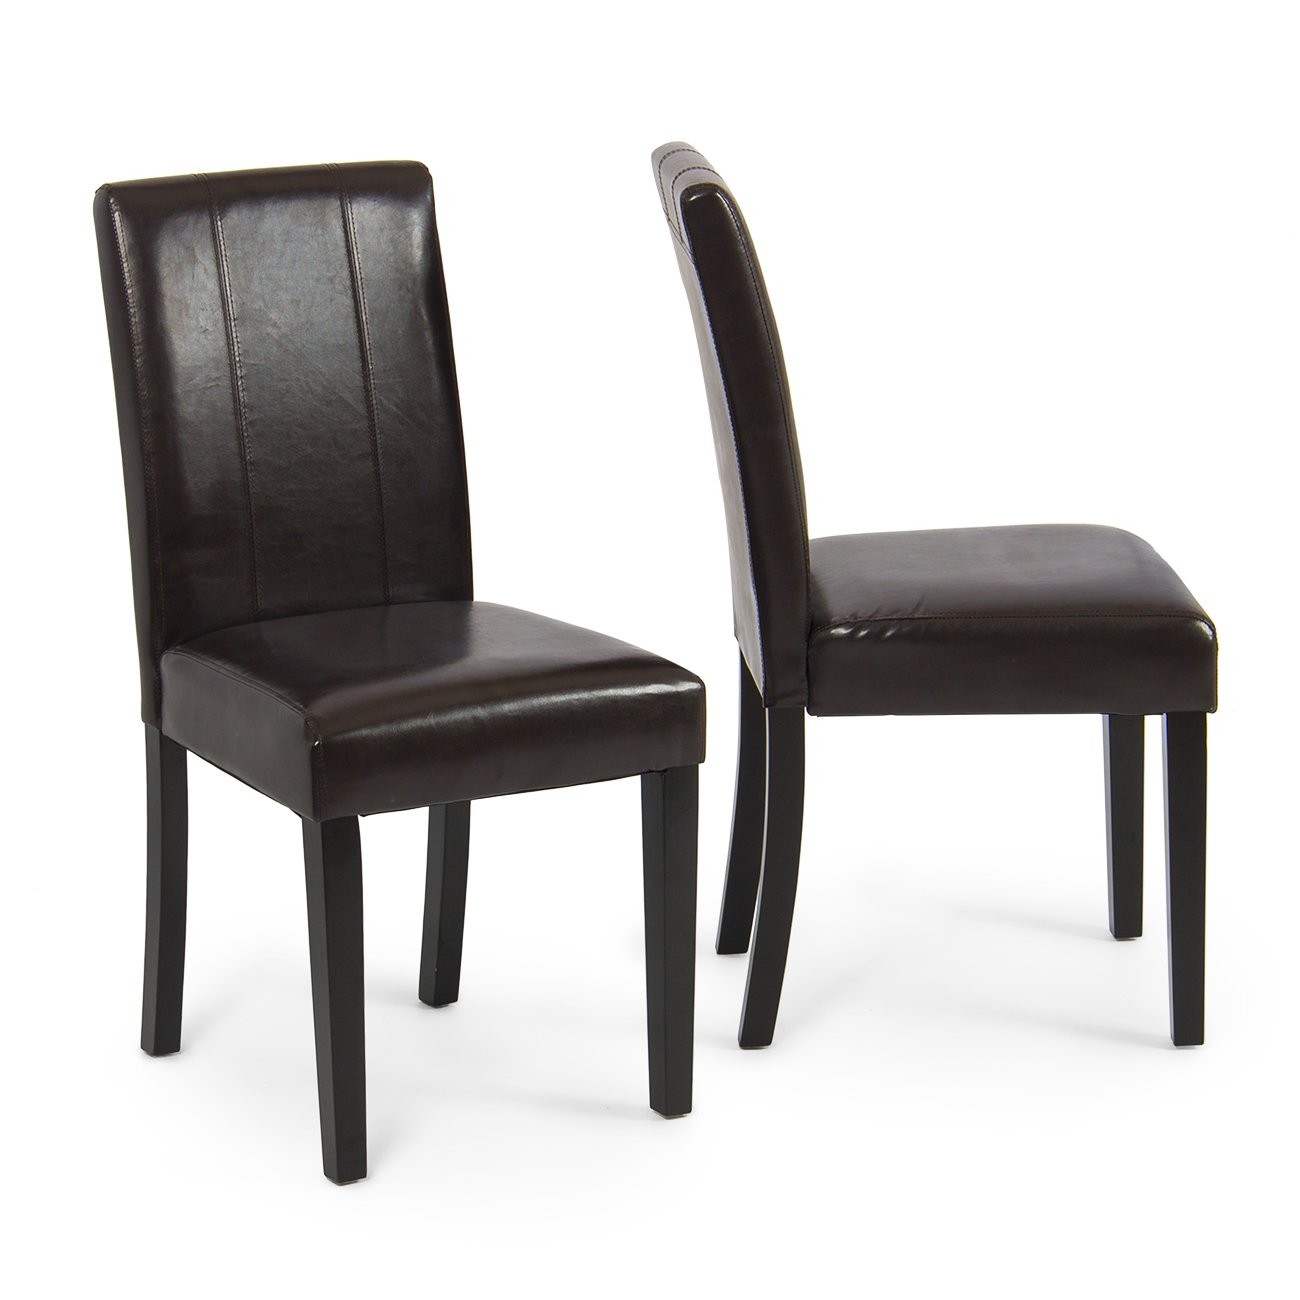 Elegant modern parsons chair leather dining living room for Leather parsons dining chair